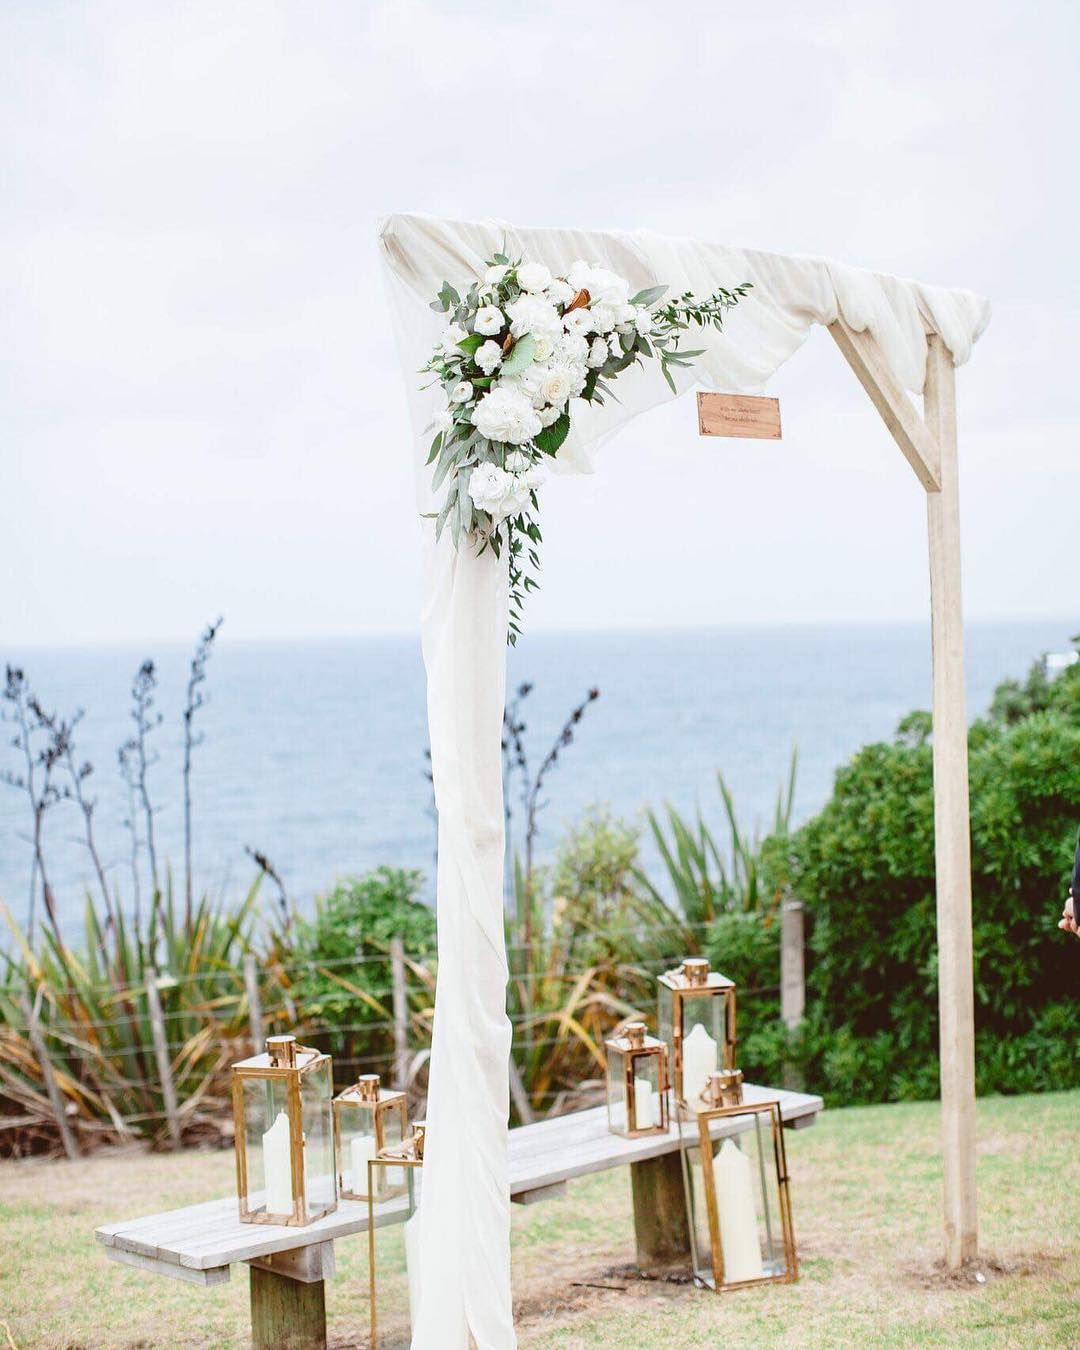 Square White Wedding Ceremony Arch Idea Little Moments Littlemomentsnz On Instagram Looking F White Wedding Ceremony Wedding Ceremony Arch Ceremony Arch